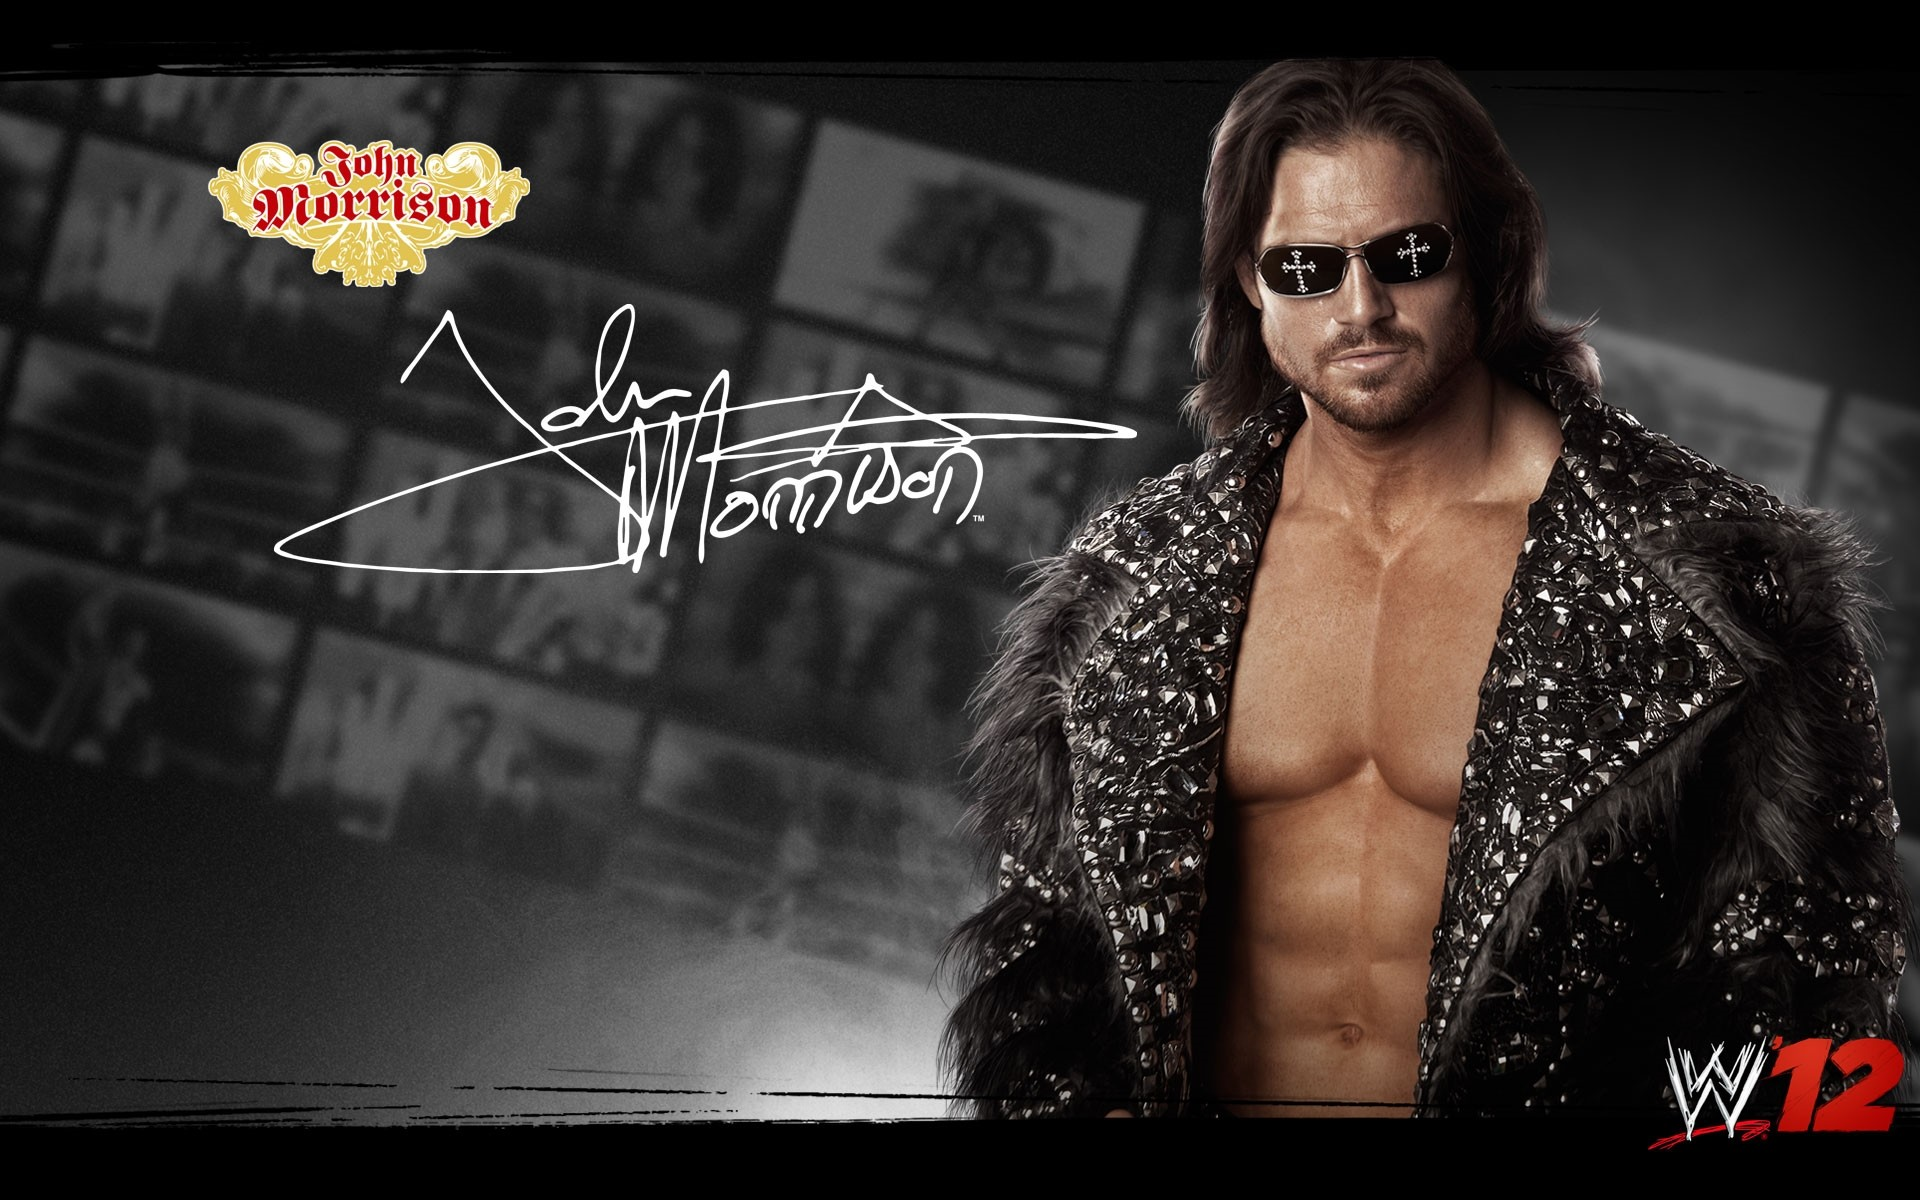 wwe Download WWE Wallpapers HD Pictures Backgrounds Hd